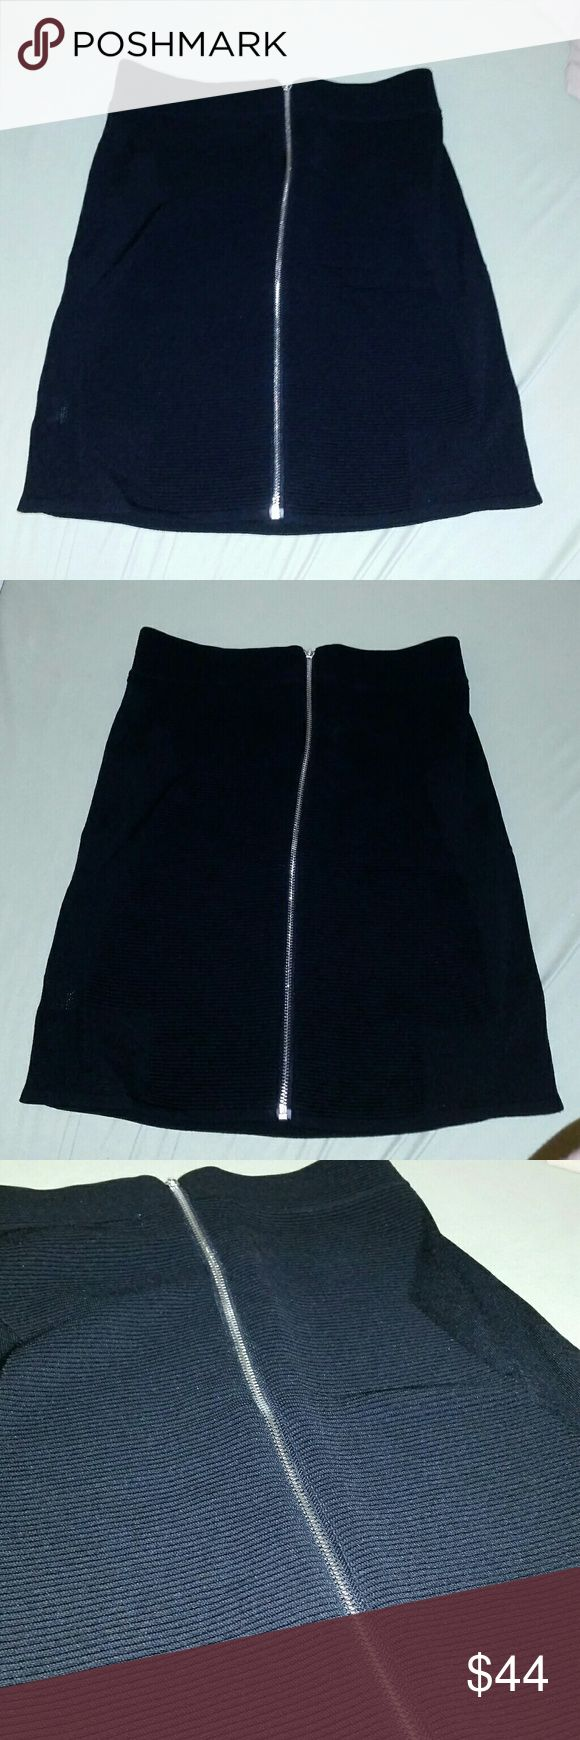 NEW PARKER FULL BACK ZIP PENCIL SKIRT LARGE New Full back zipper Parker pencil skirt Size large Super stretchy Contrast fabric pattern 75% rayon 25% nylon Parker Skirts Pencil